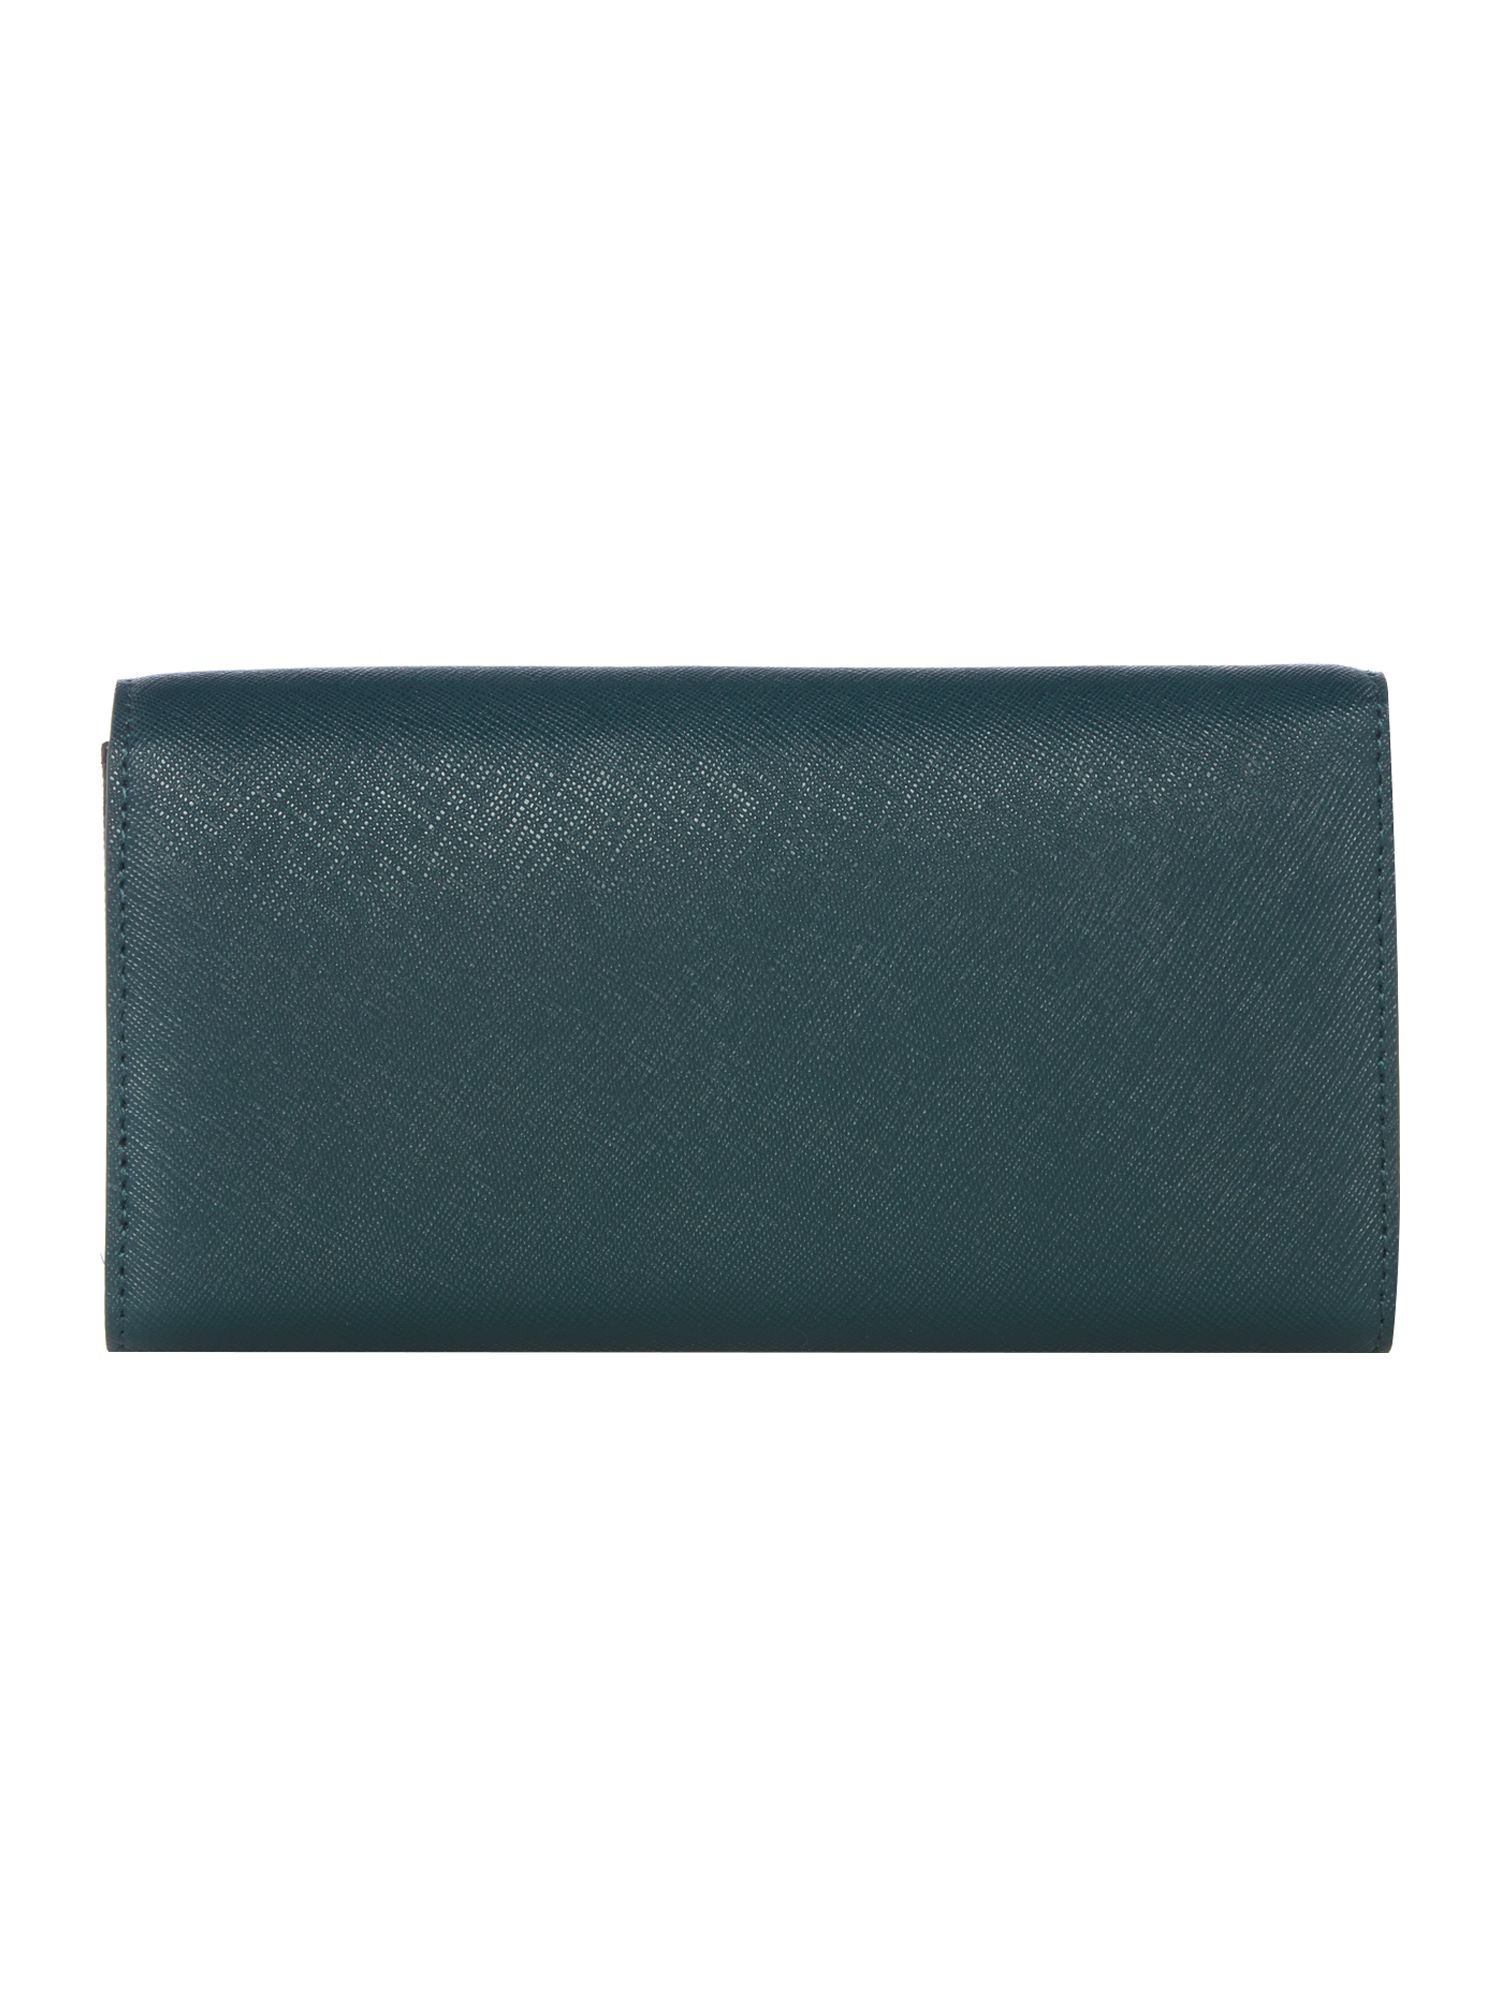 Bryant park green large envelope flap over purse